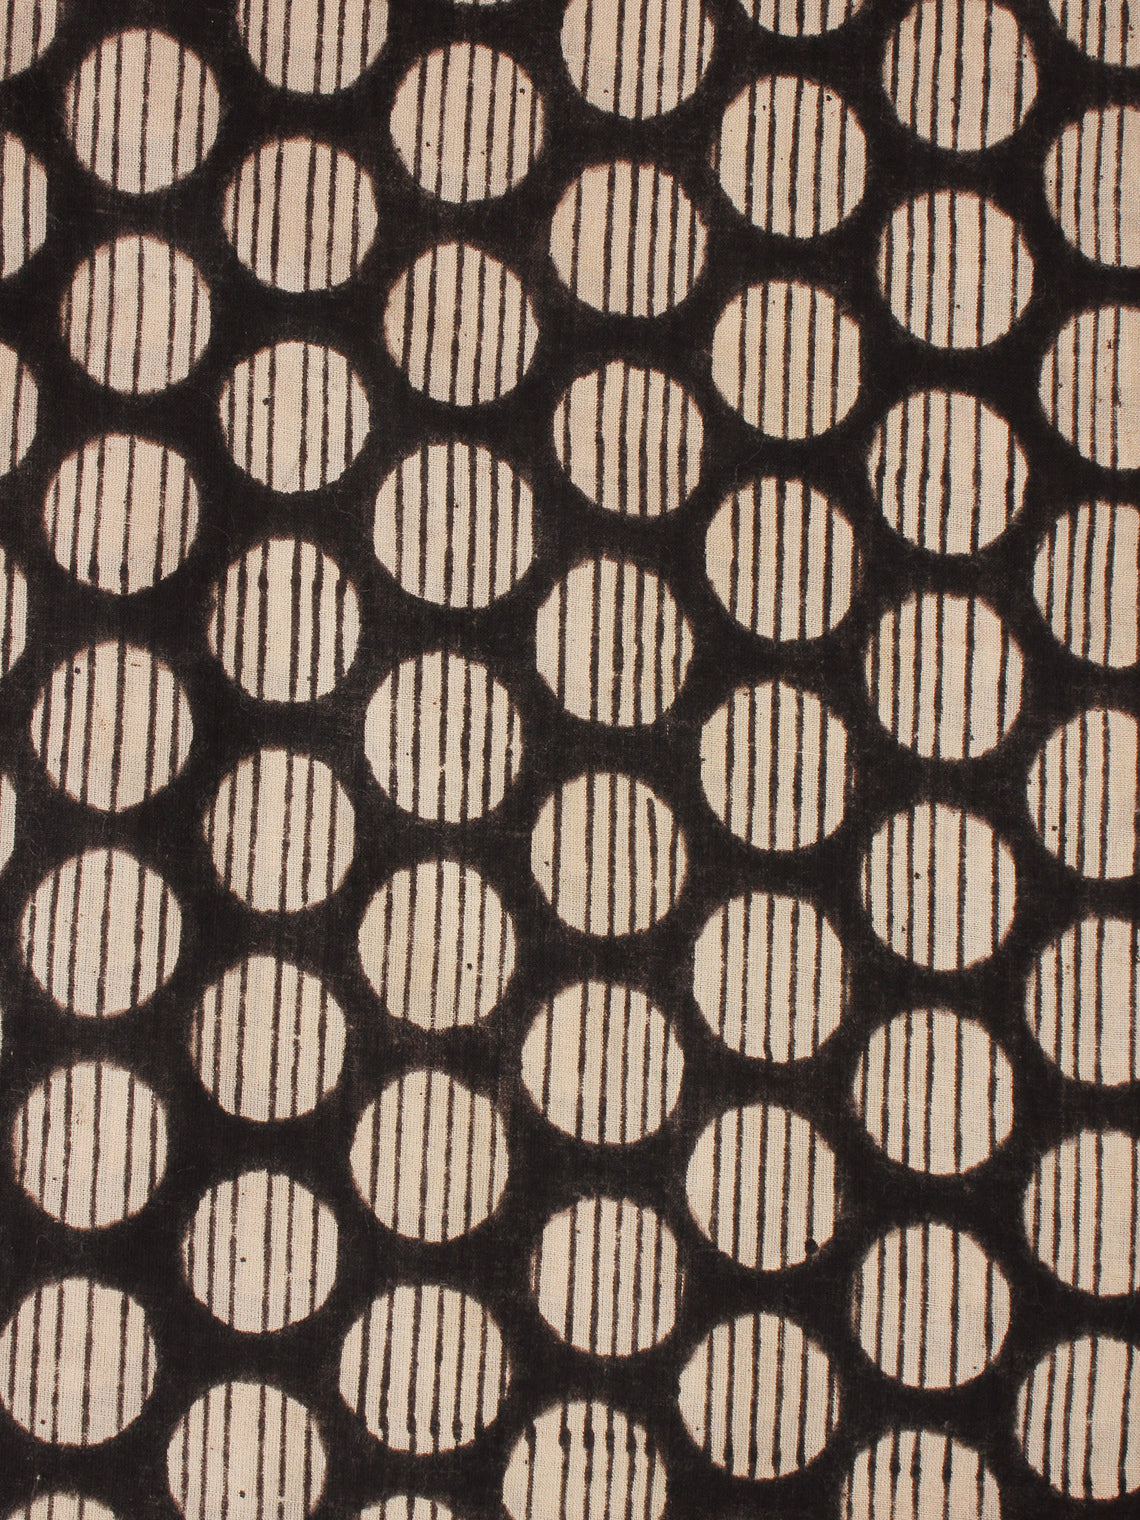 Beige Black Hand Block Printed Cotton Fabric Per Meter - F0916352